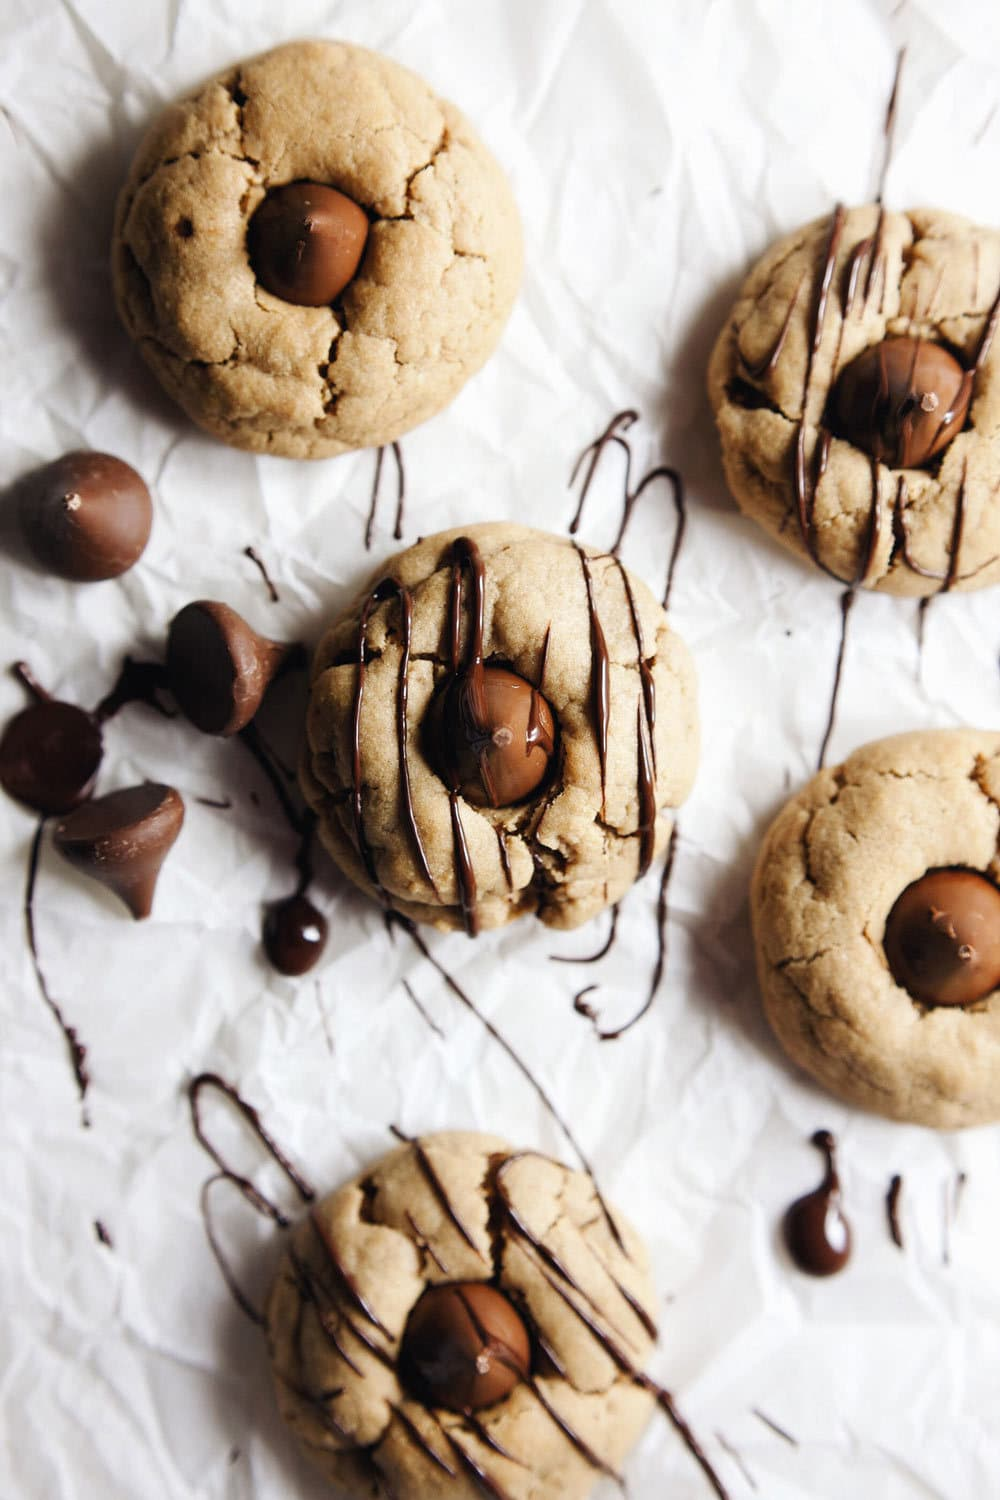 Peanut butter blossom cookies drizzled with melted chocolate on white parchment paper.